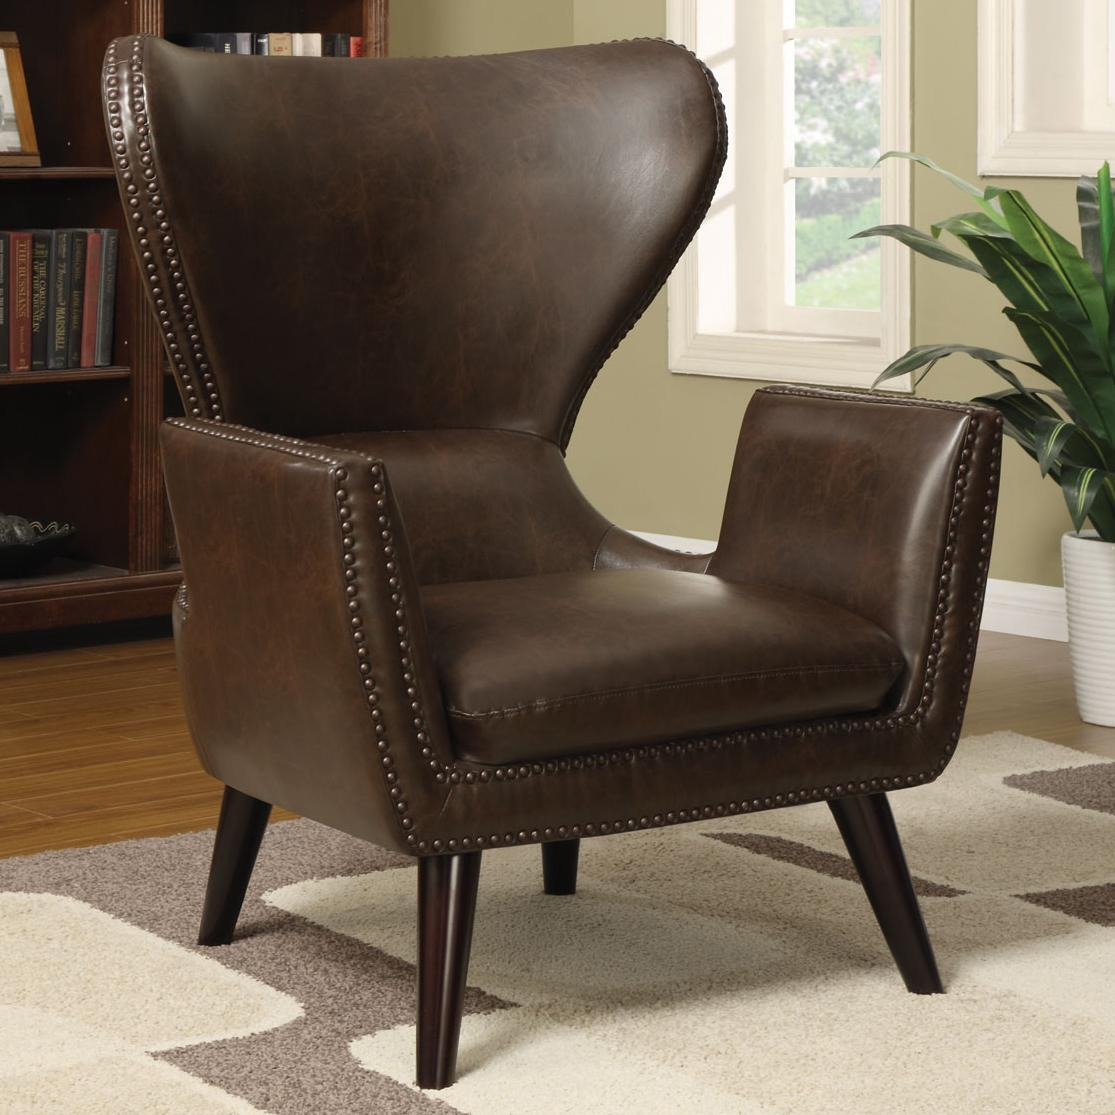 Coaster Accent Seating Accent Chair - Item Number: 902089